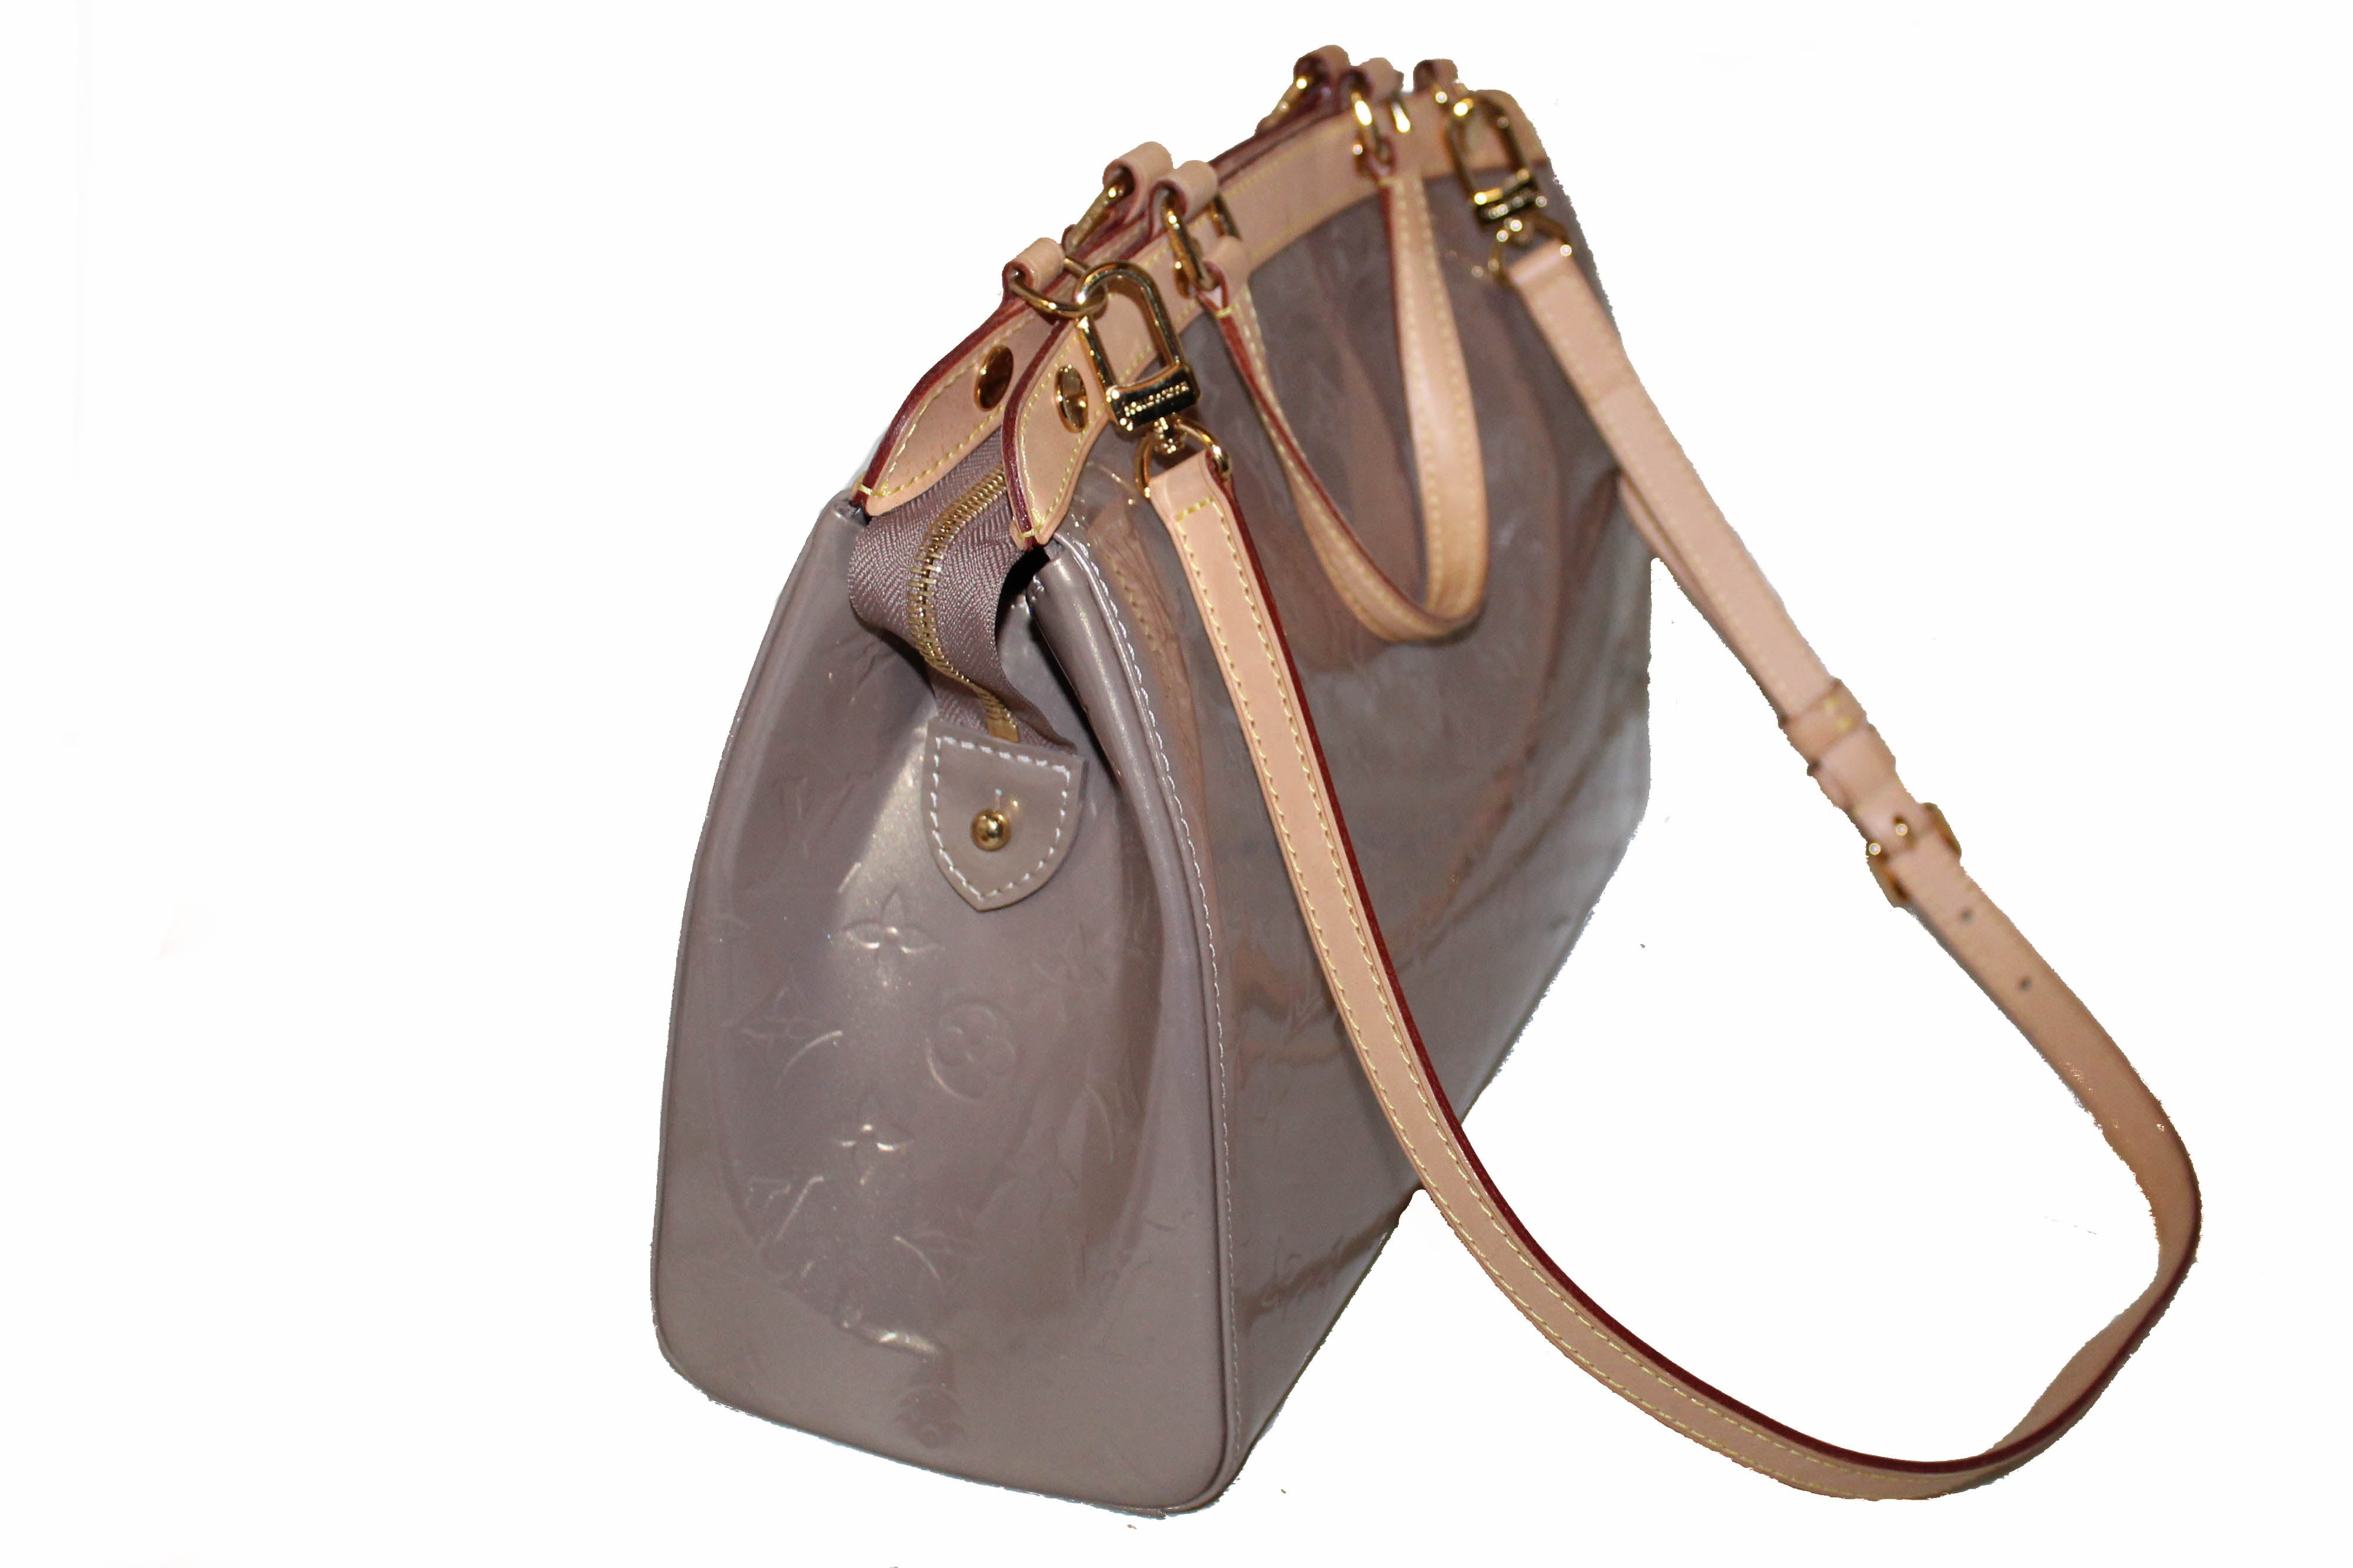 Authentic Louis Vuitton Beige Vernis Leather Brea PM Shoulder Bag